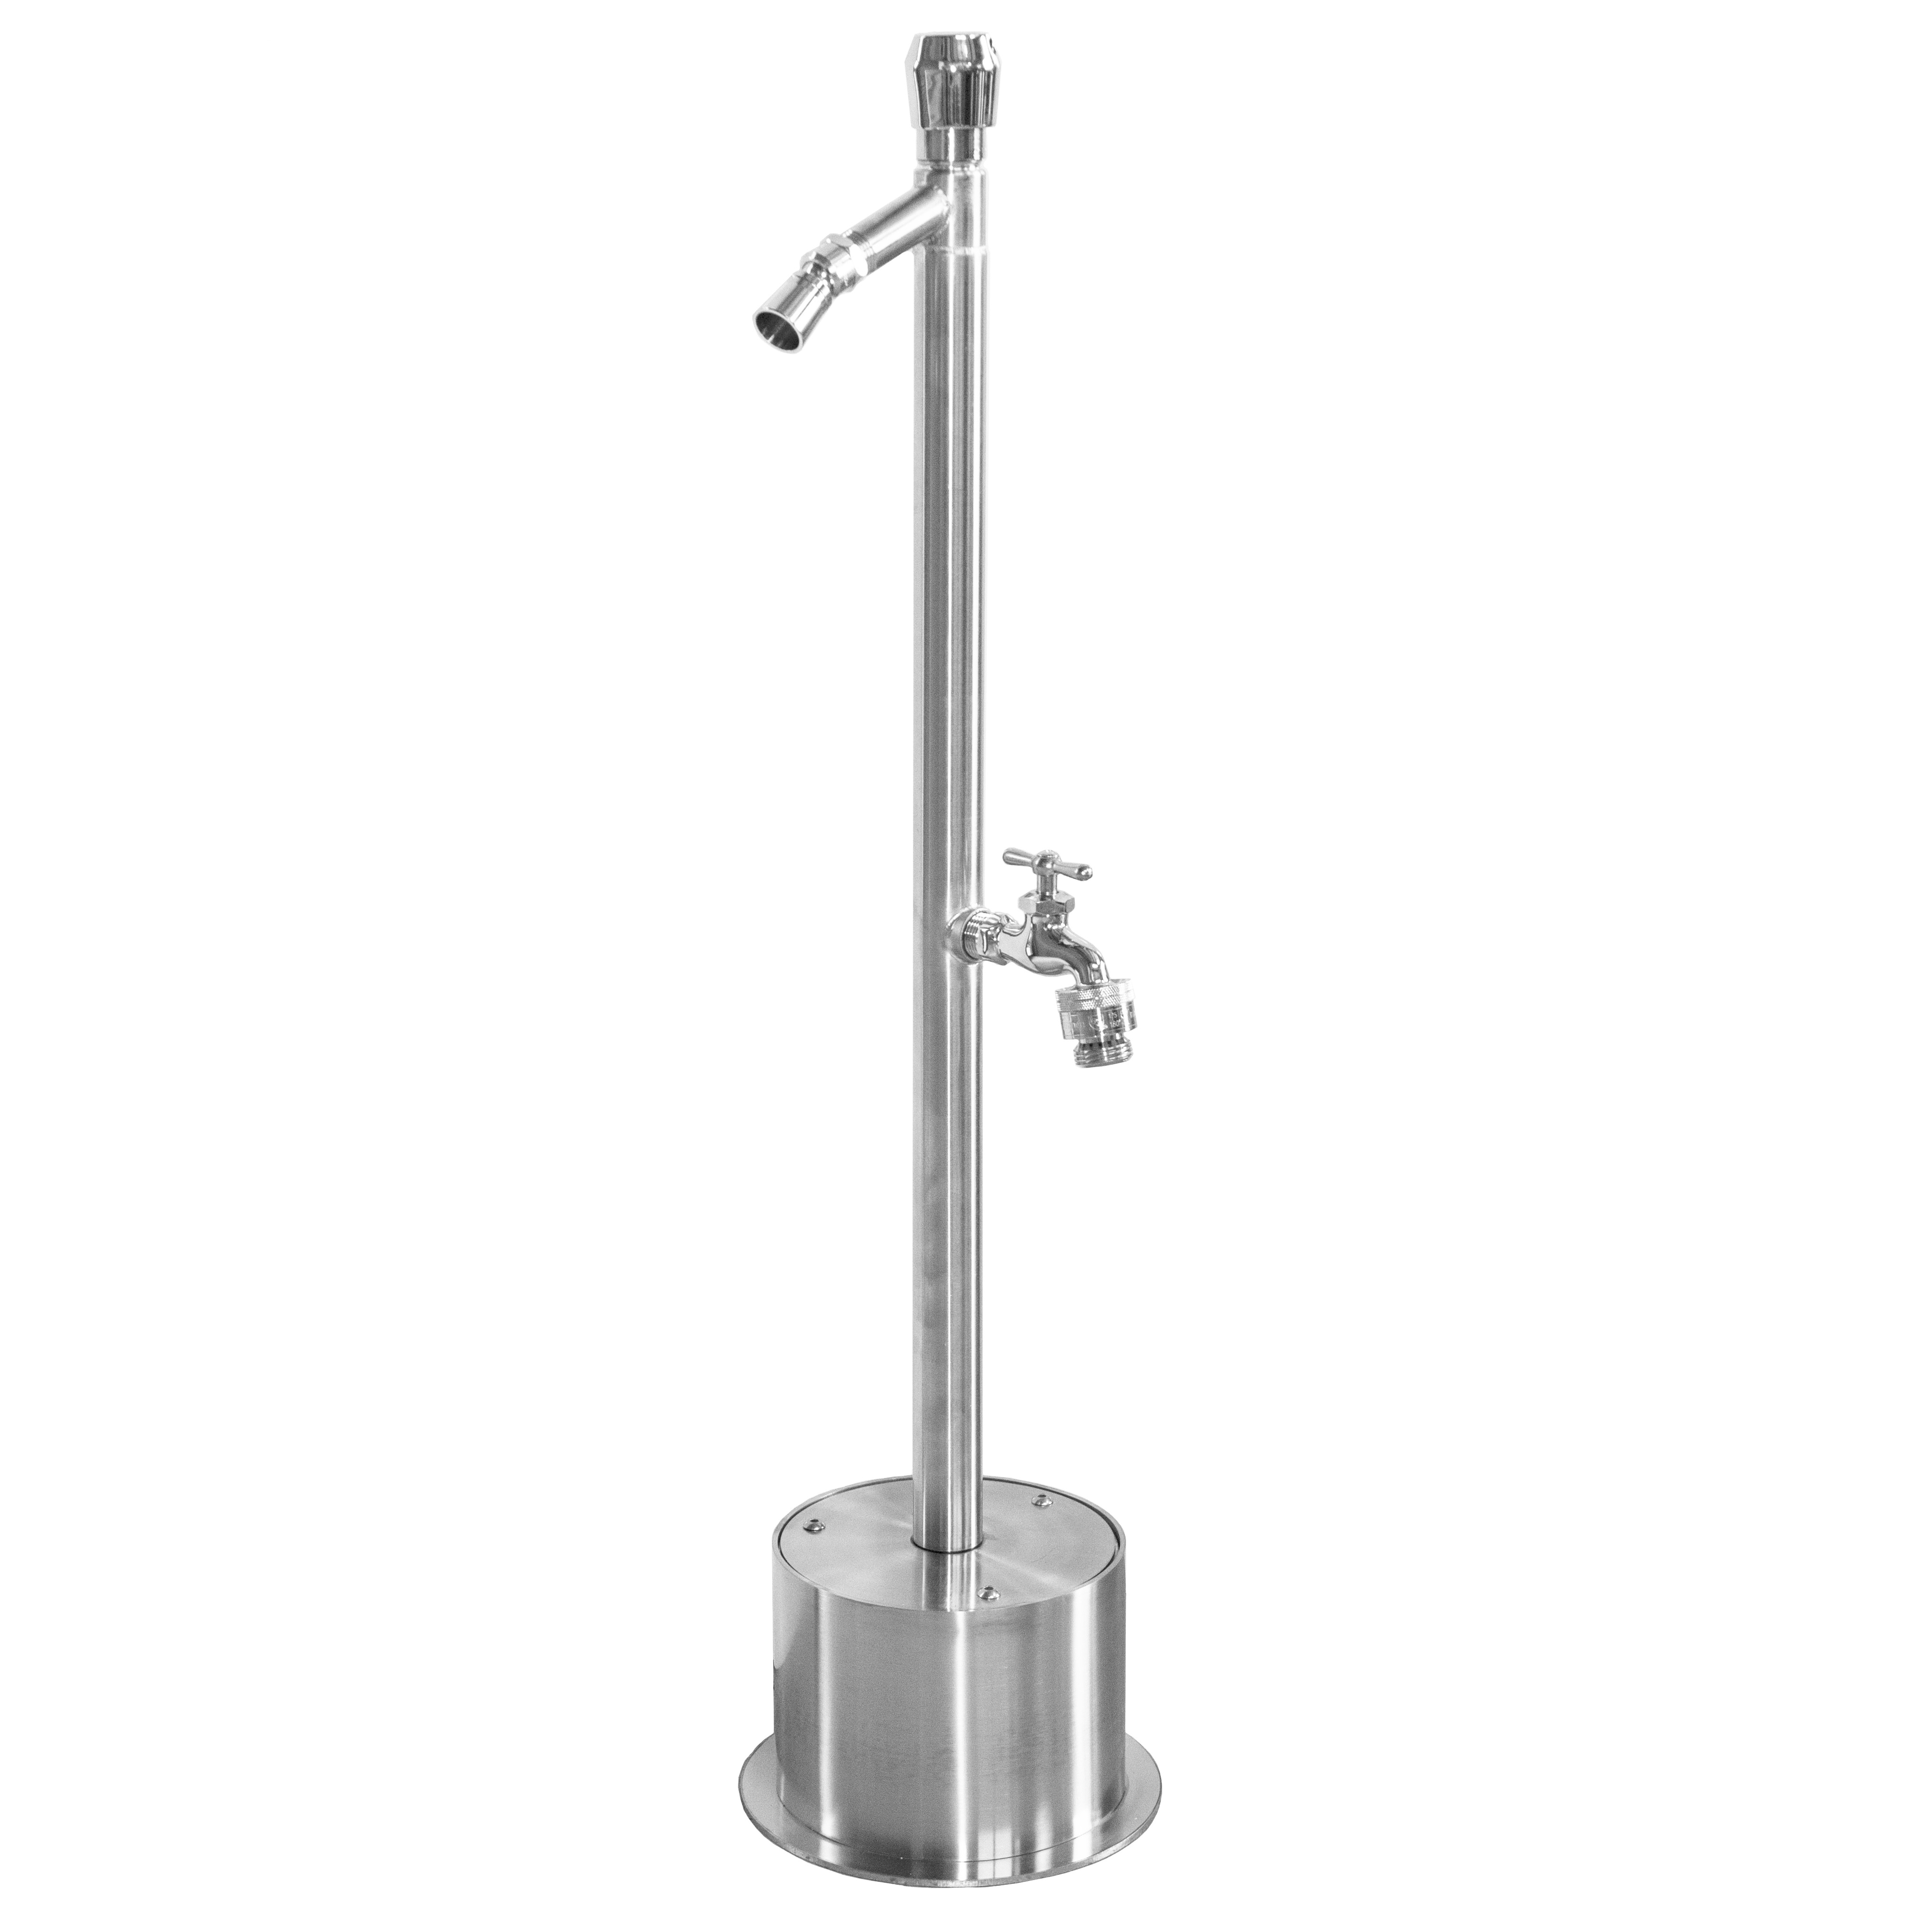 Outdoor Shower Company FSFSHB-300-ADA Free Standing Single Supply ADA Metered Foot Shower, Hose Bibb